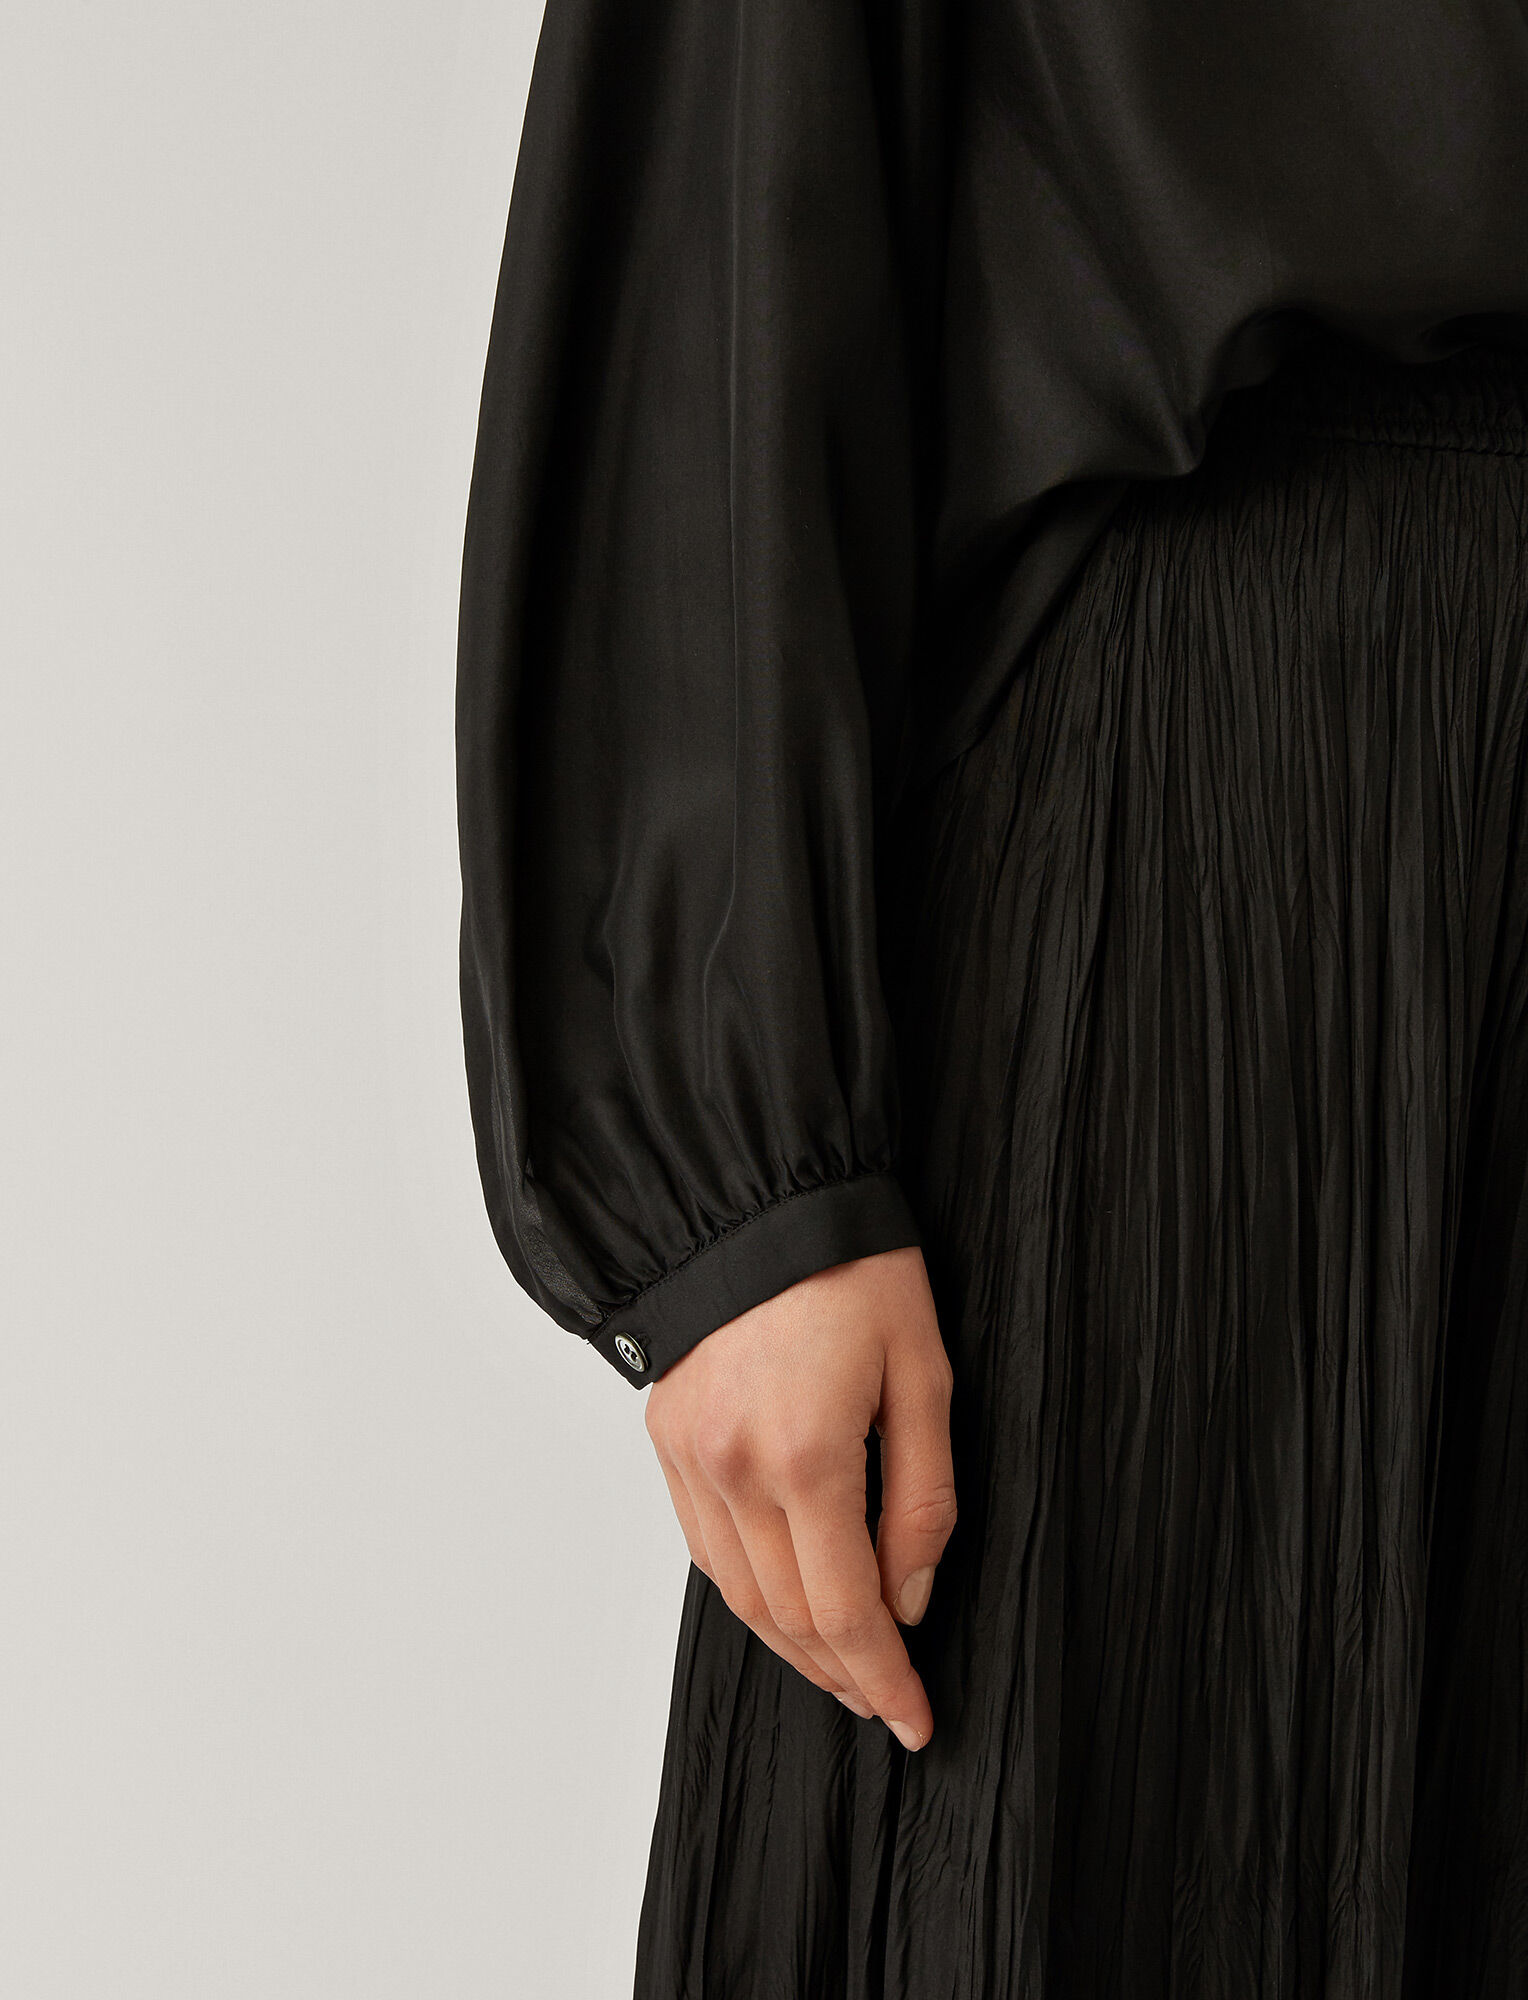 Joseph, Bowell Silk Habotai Blouse, in BLACK